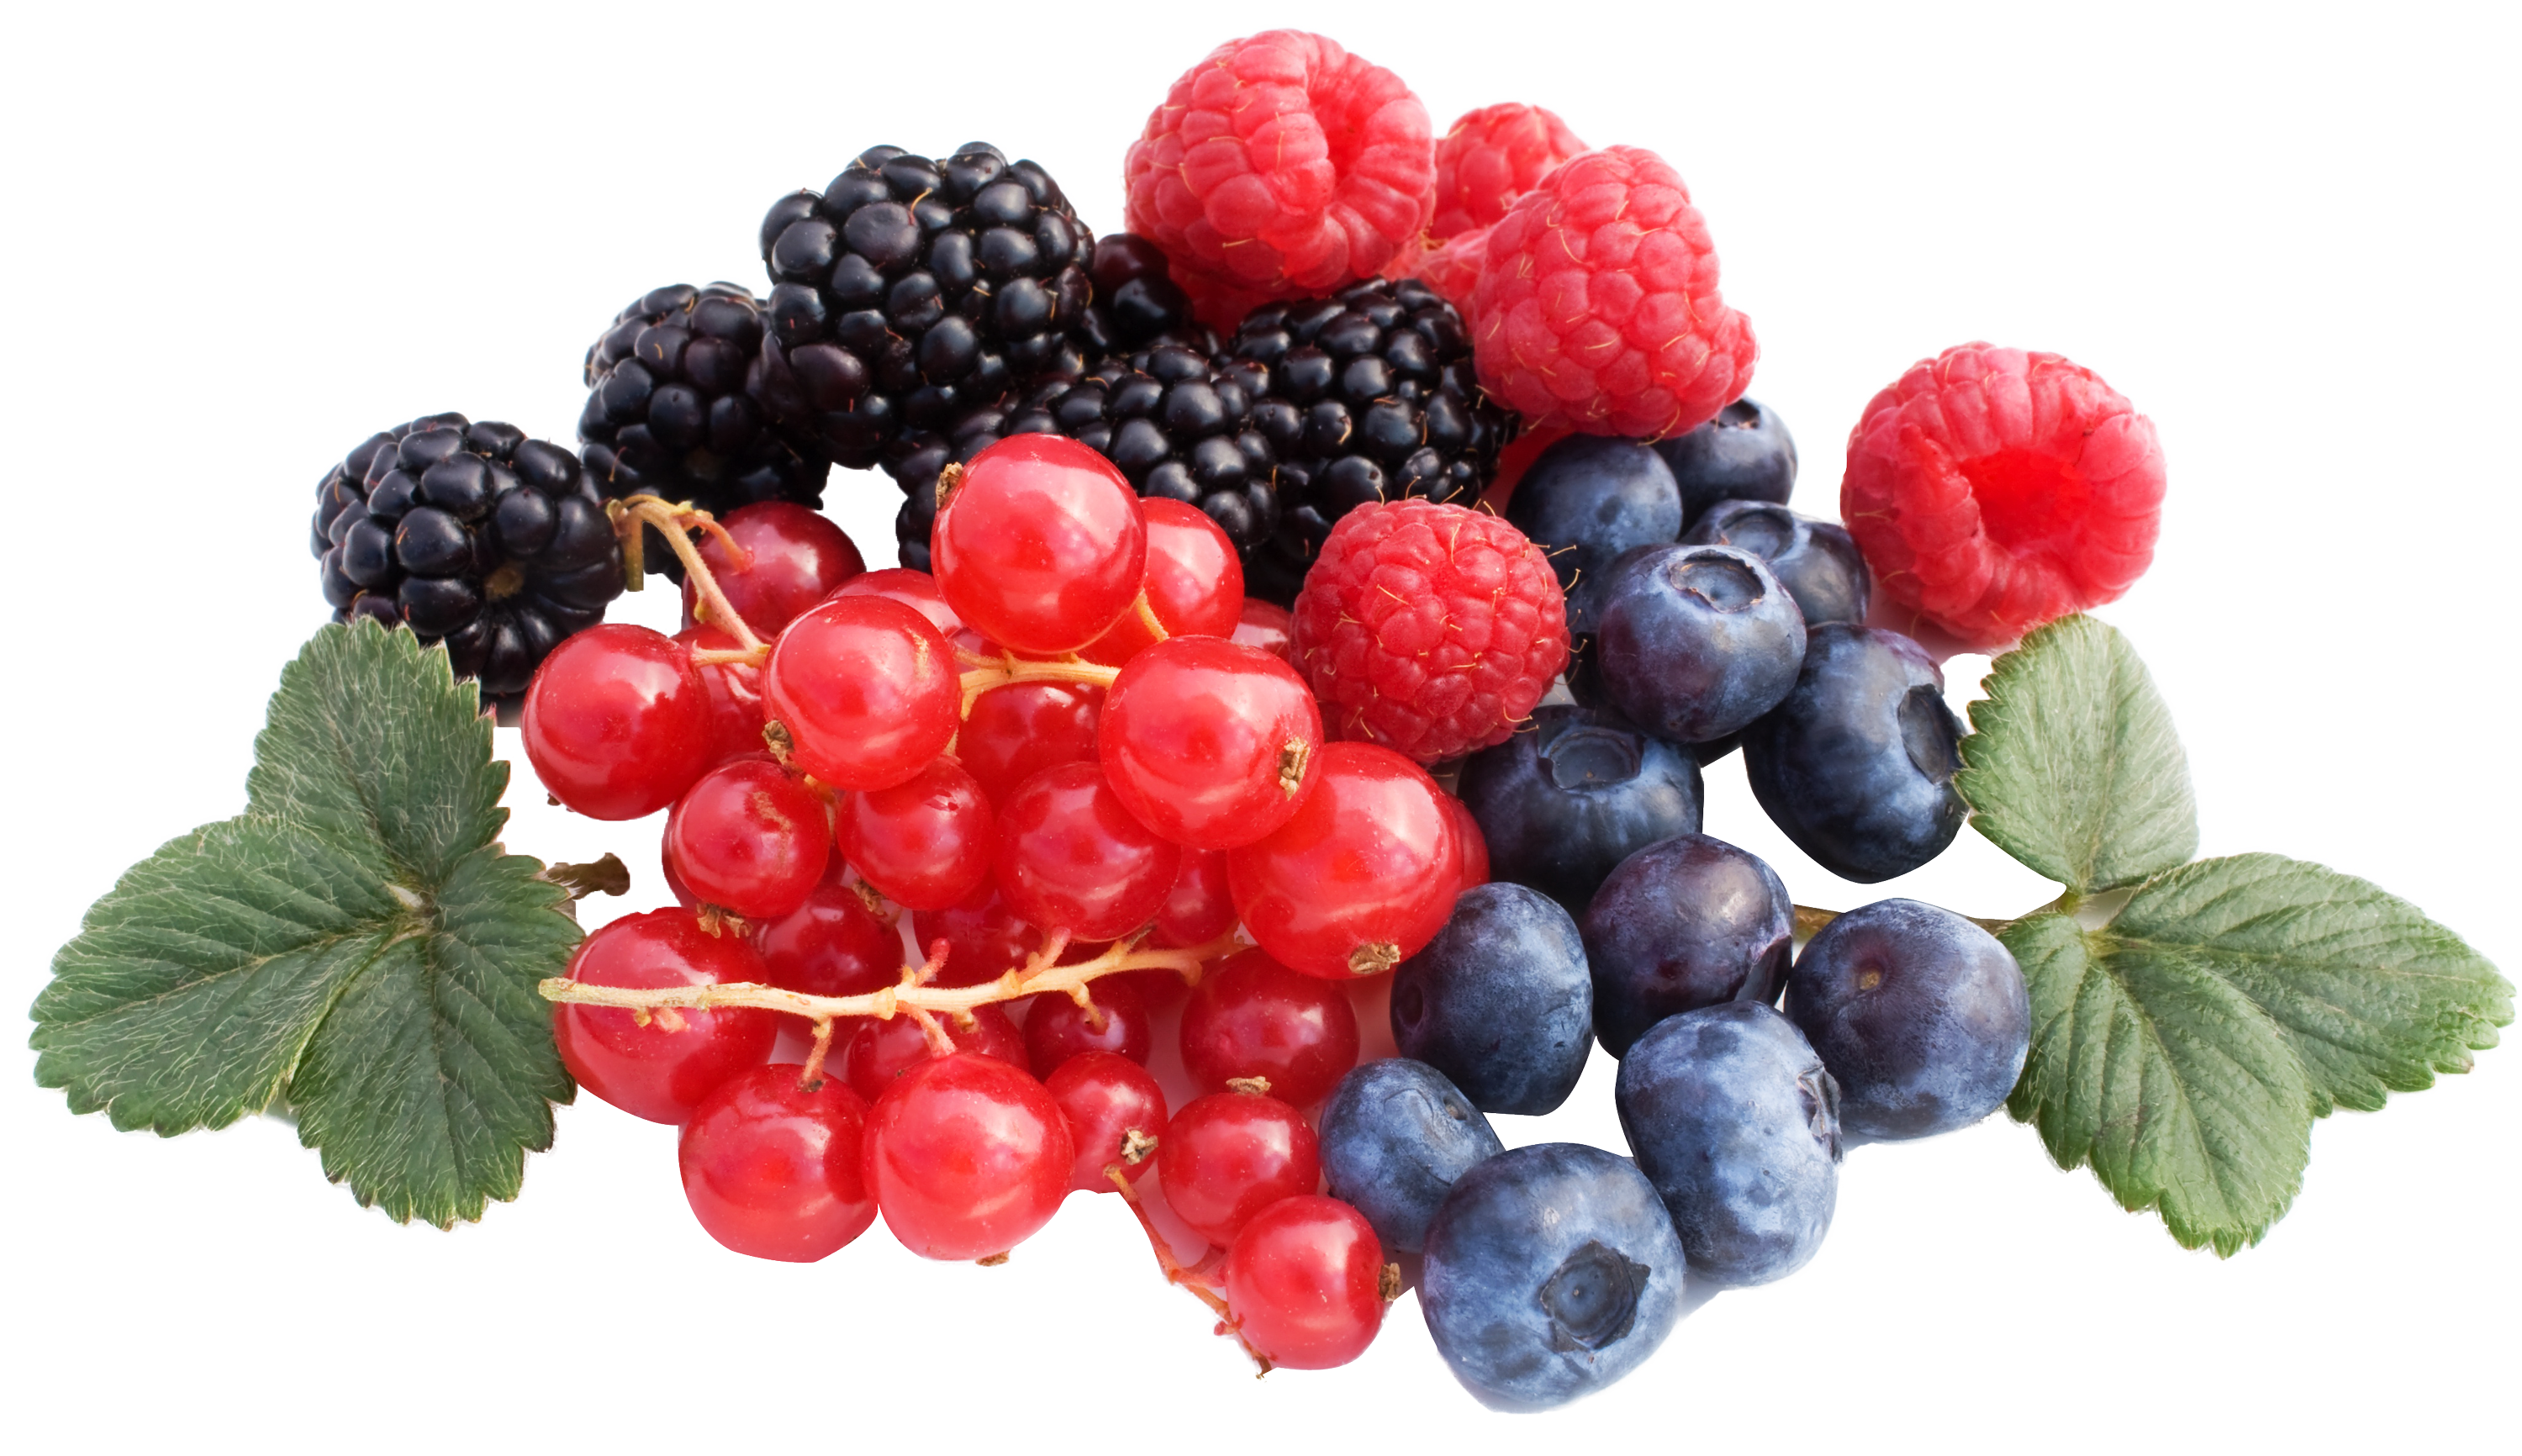 Berry png hd images. Berries clipart transparent background